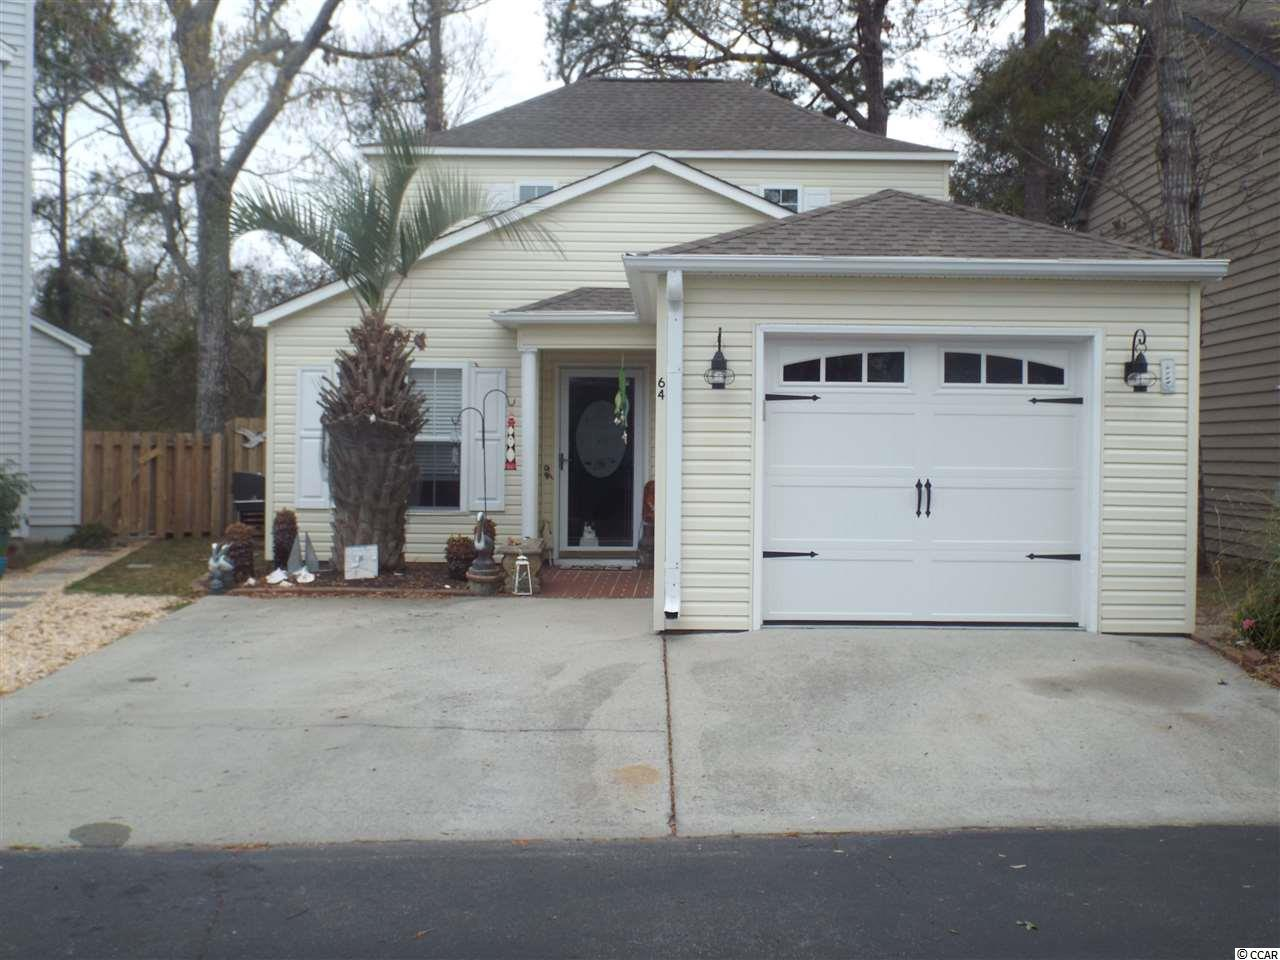 Single Family Home for Sale at 829 9th Avenue South 829 9th Avenue South North Myrtle Beach, South Carolina 29582 United States